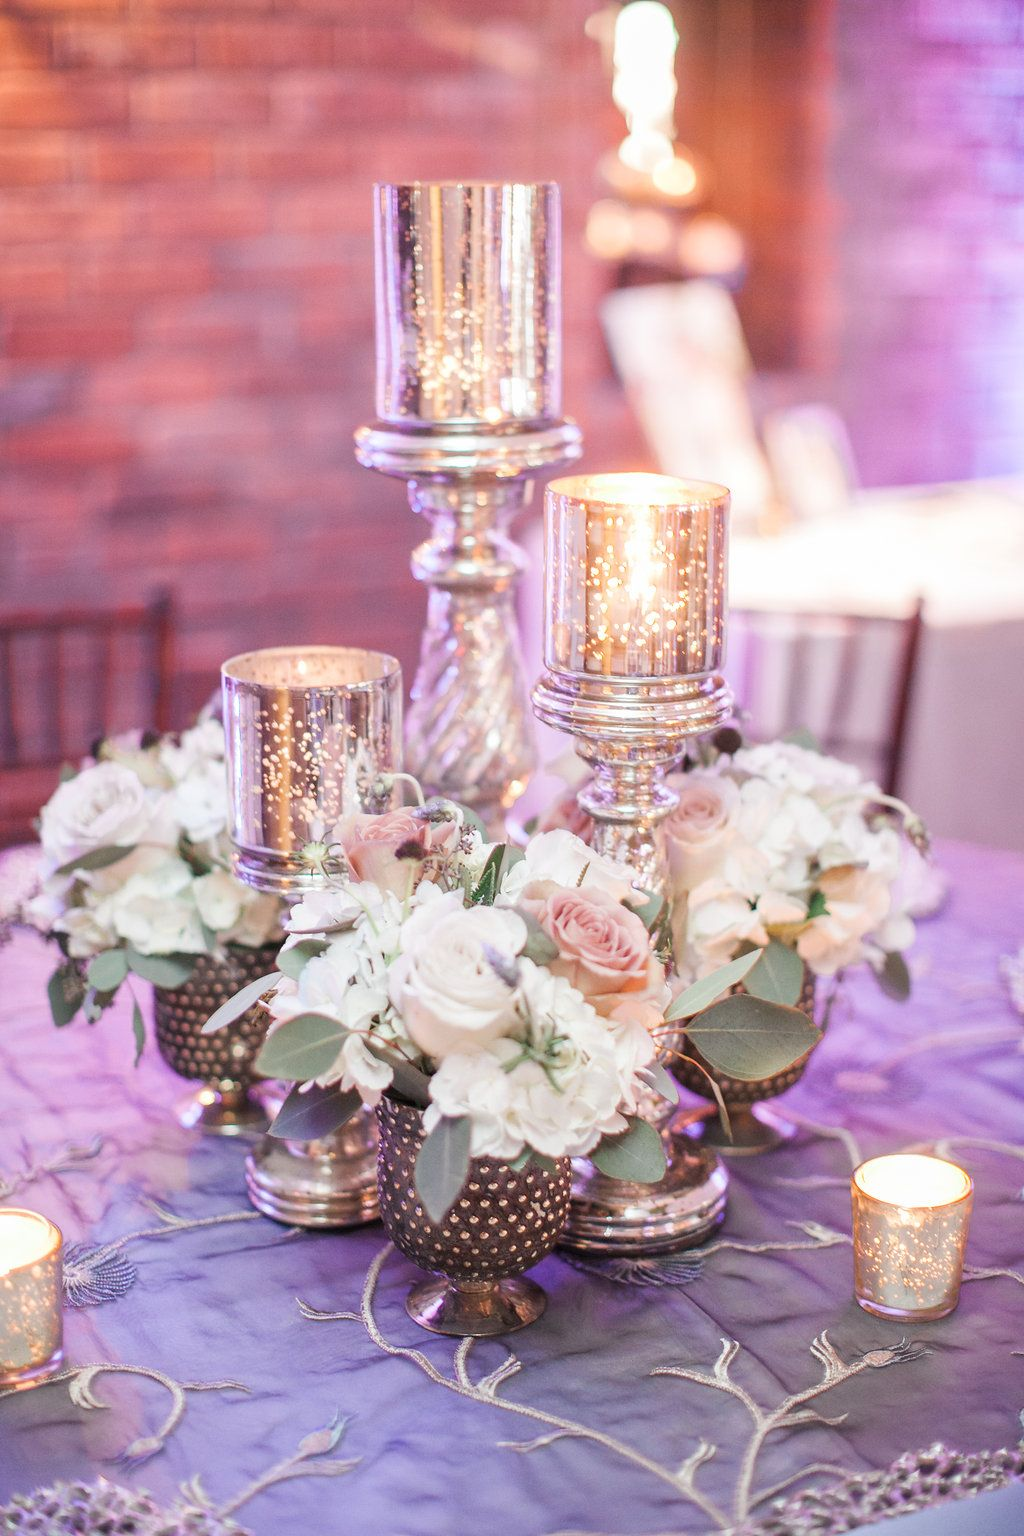 Wedding Centerpiece Our Set Of 3 Silver Mercury Glass Candle Holders